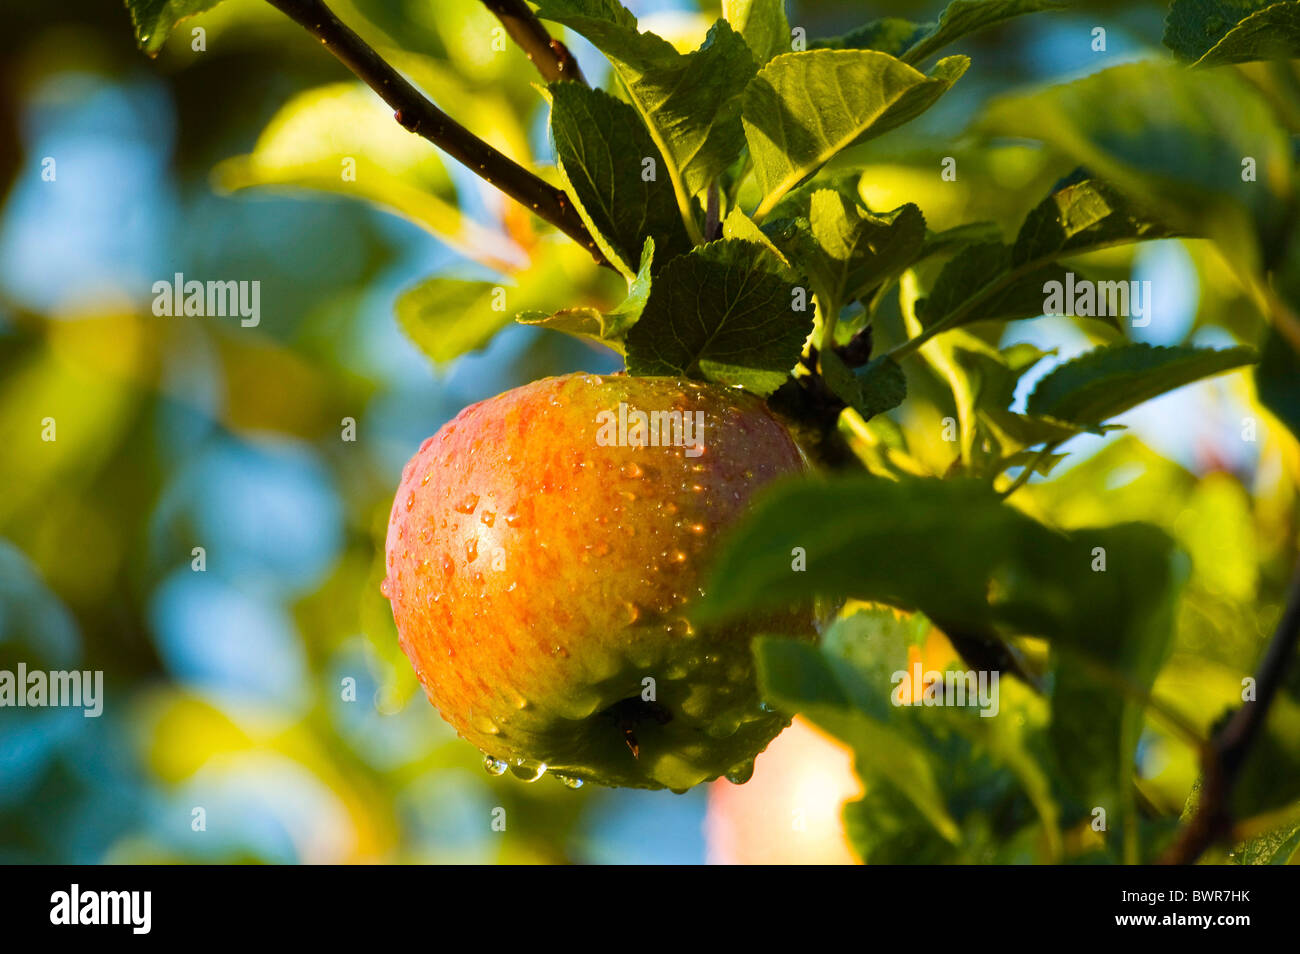 Juicy apple ready for picking - Stock Image